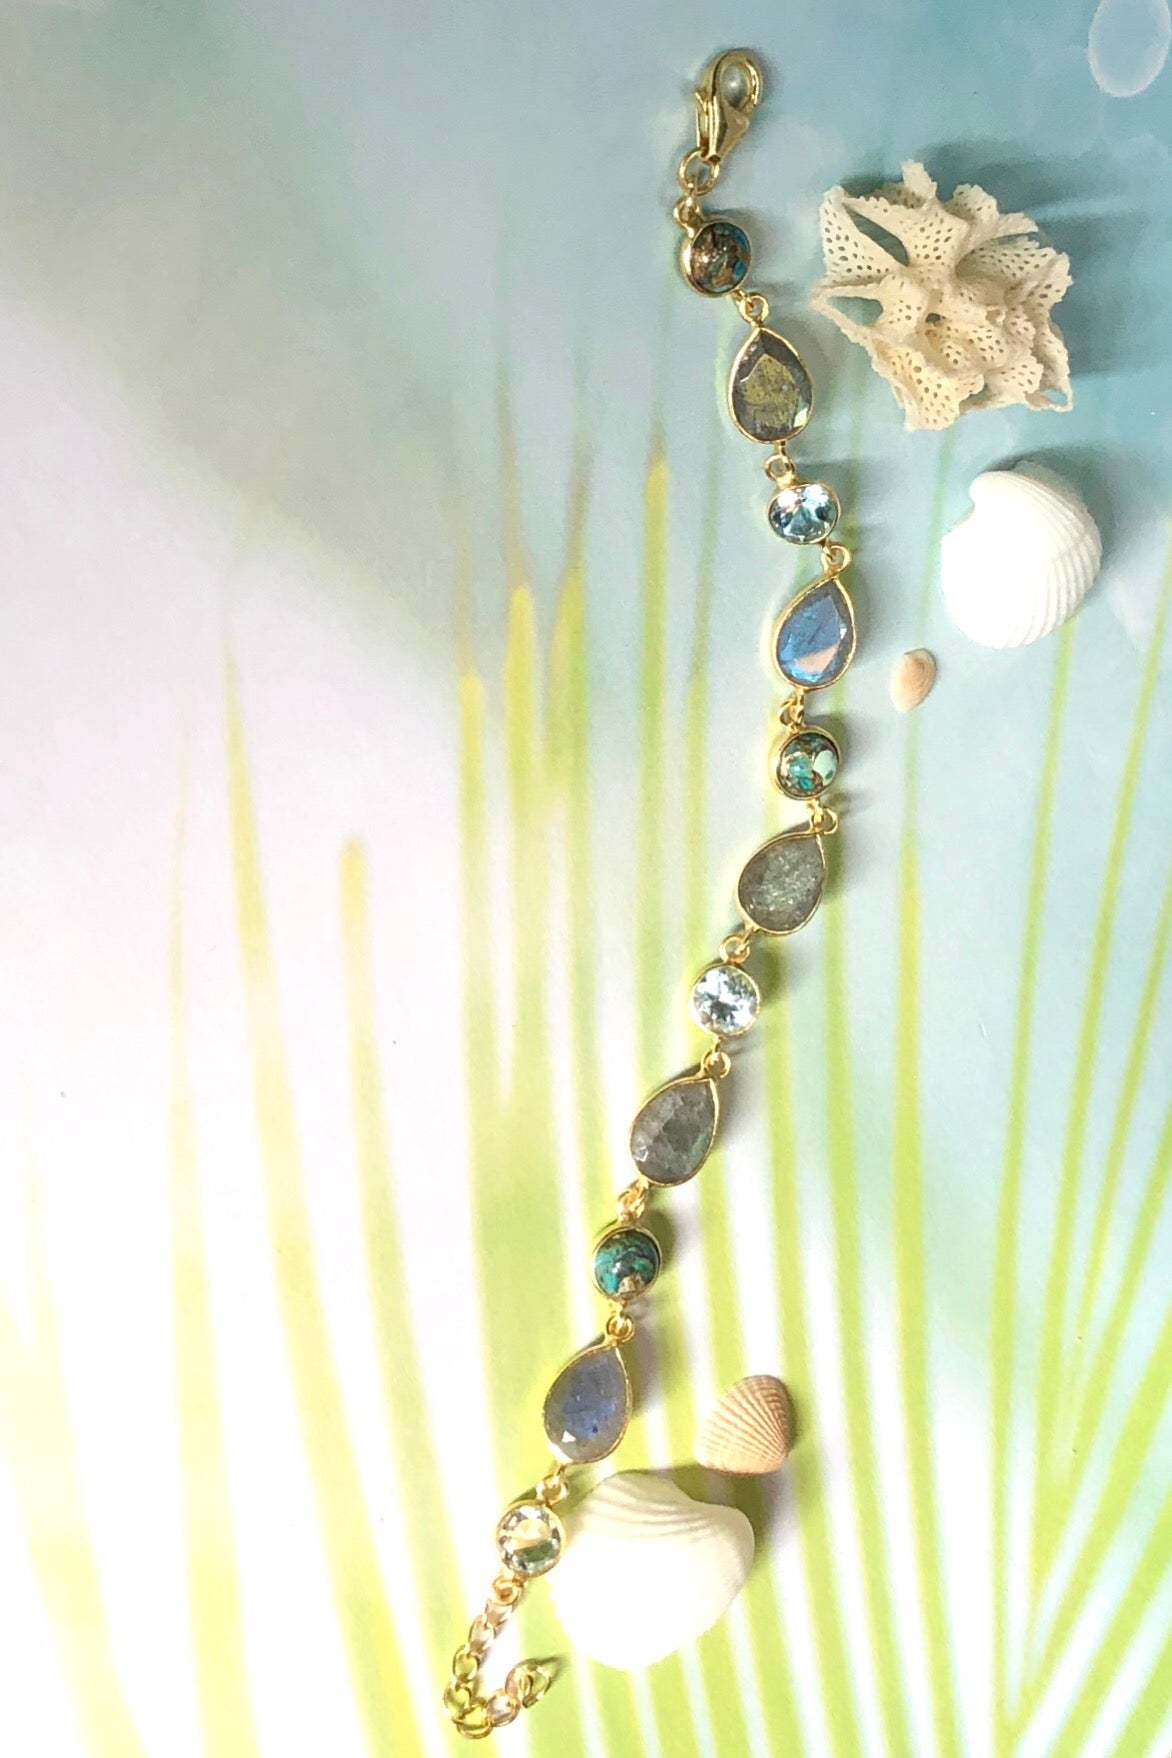 An ultra fine gold vermeil bracelet dotted with London blue Topaz, Labradorite and Turquoise composite.